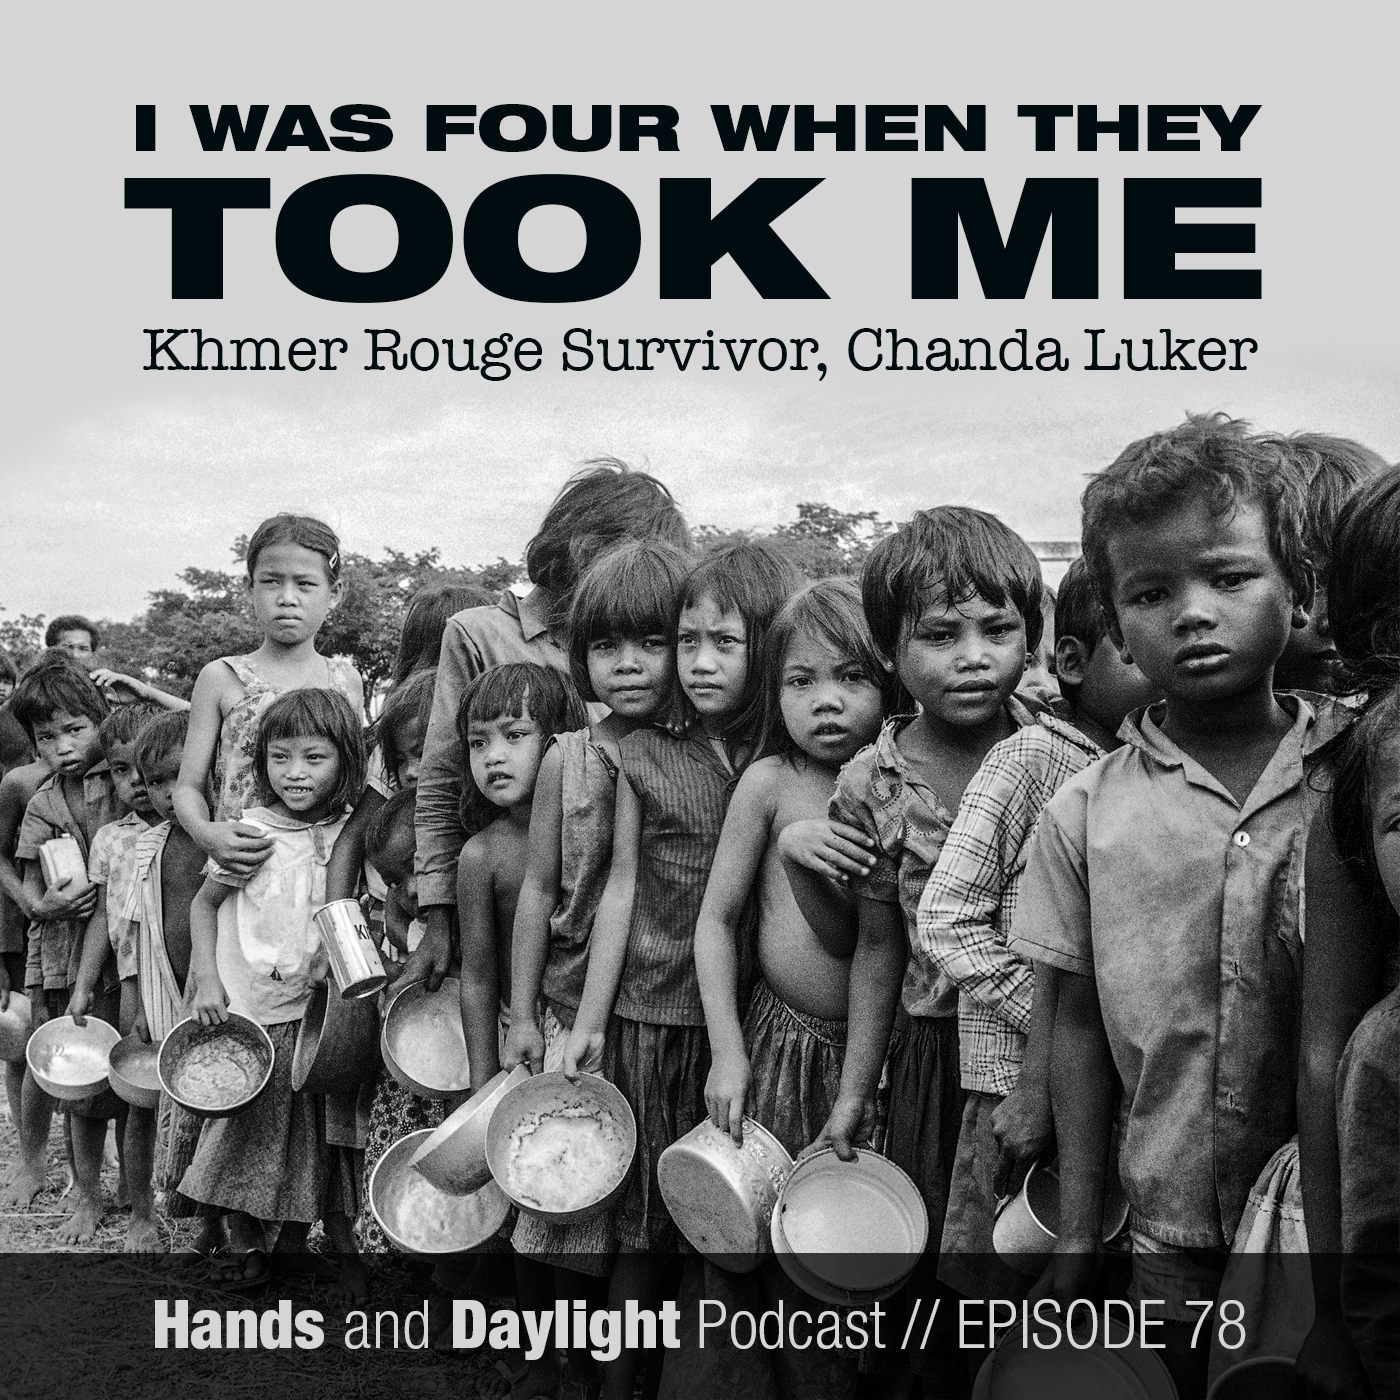 E78: I WAS FOUR WHEN THEY TOOK ME - Khmer Rouge Survivor Chanda Luker